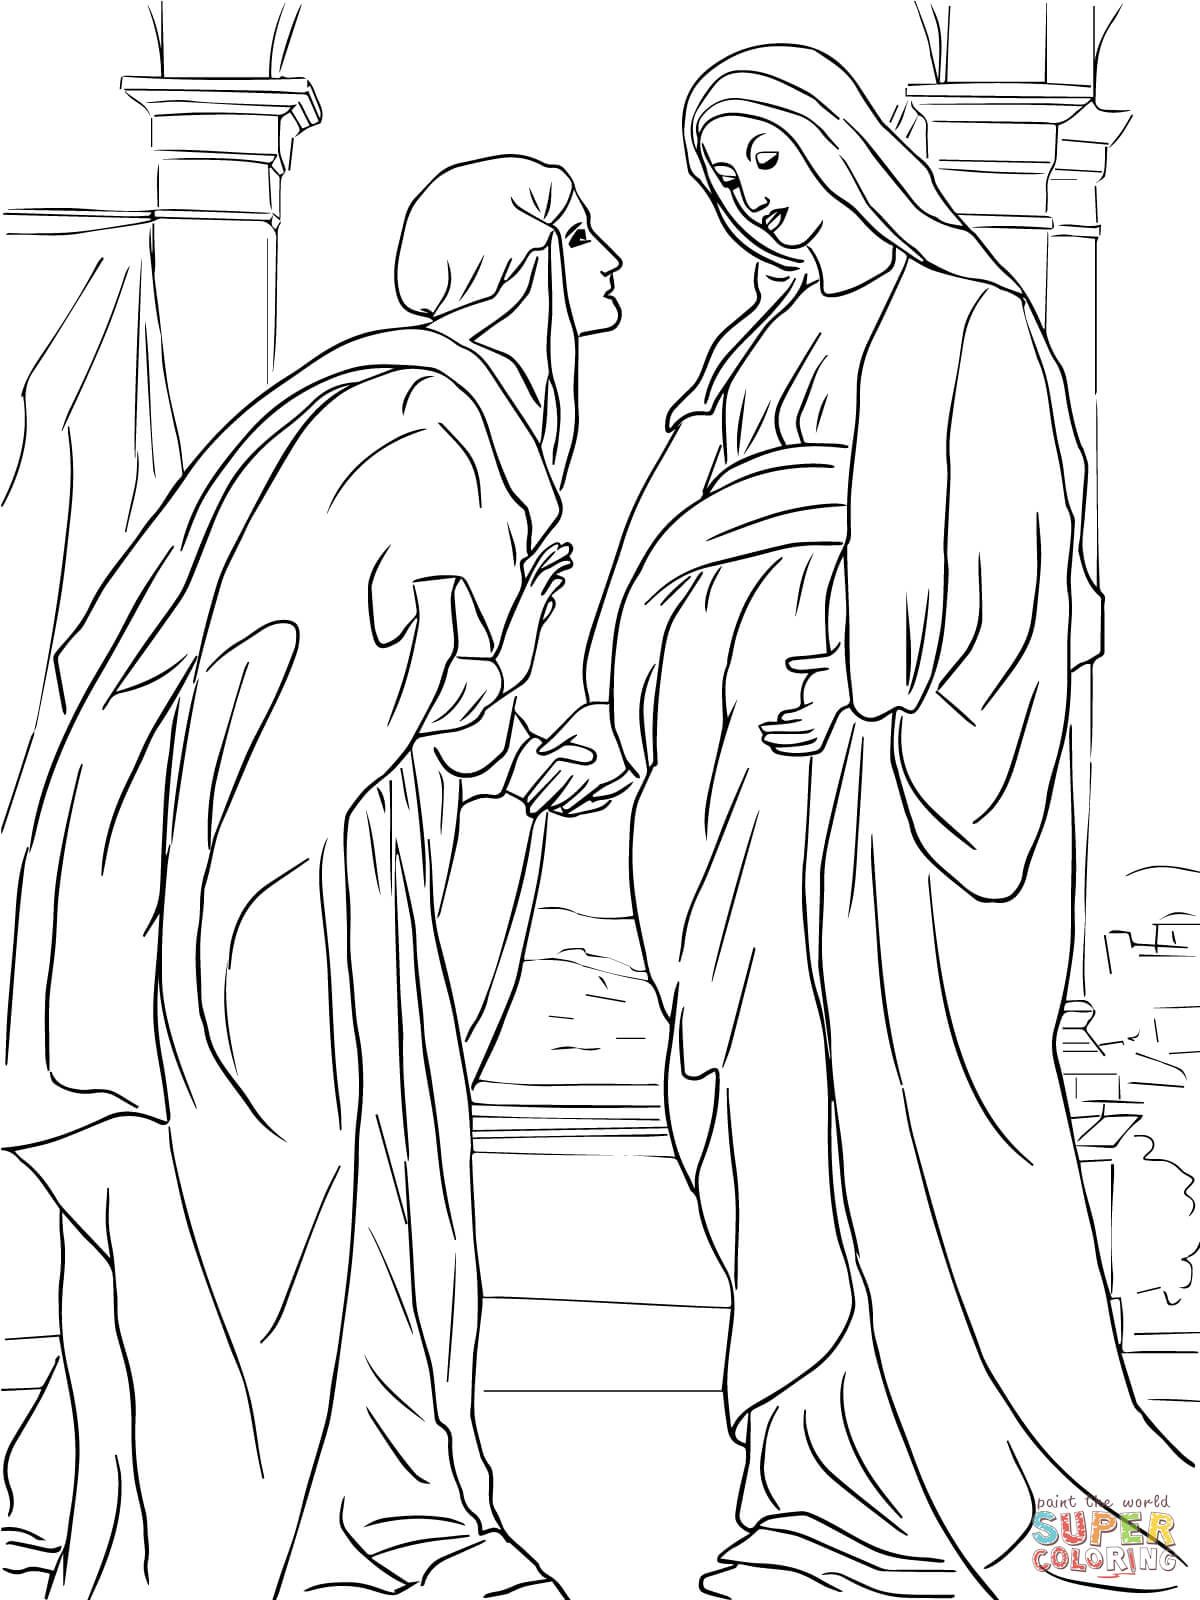 Visitation of Mary to Elizabeth coloring page from Jesus